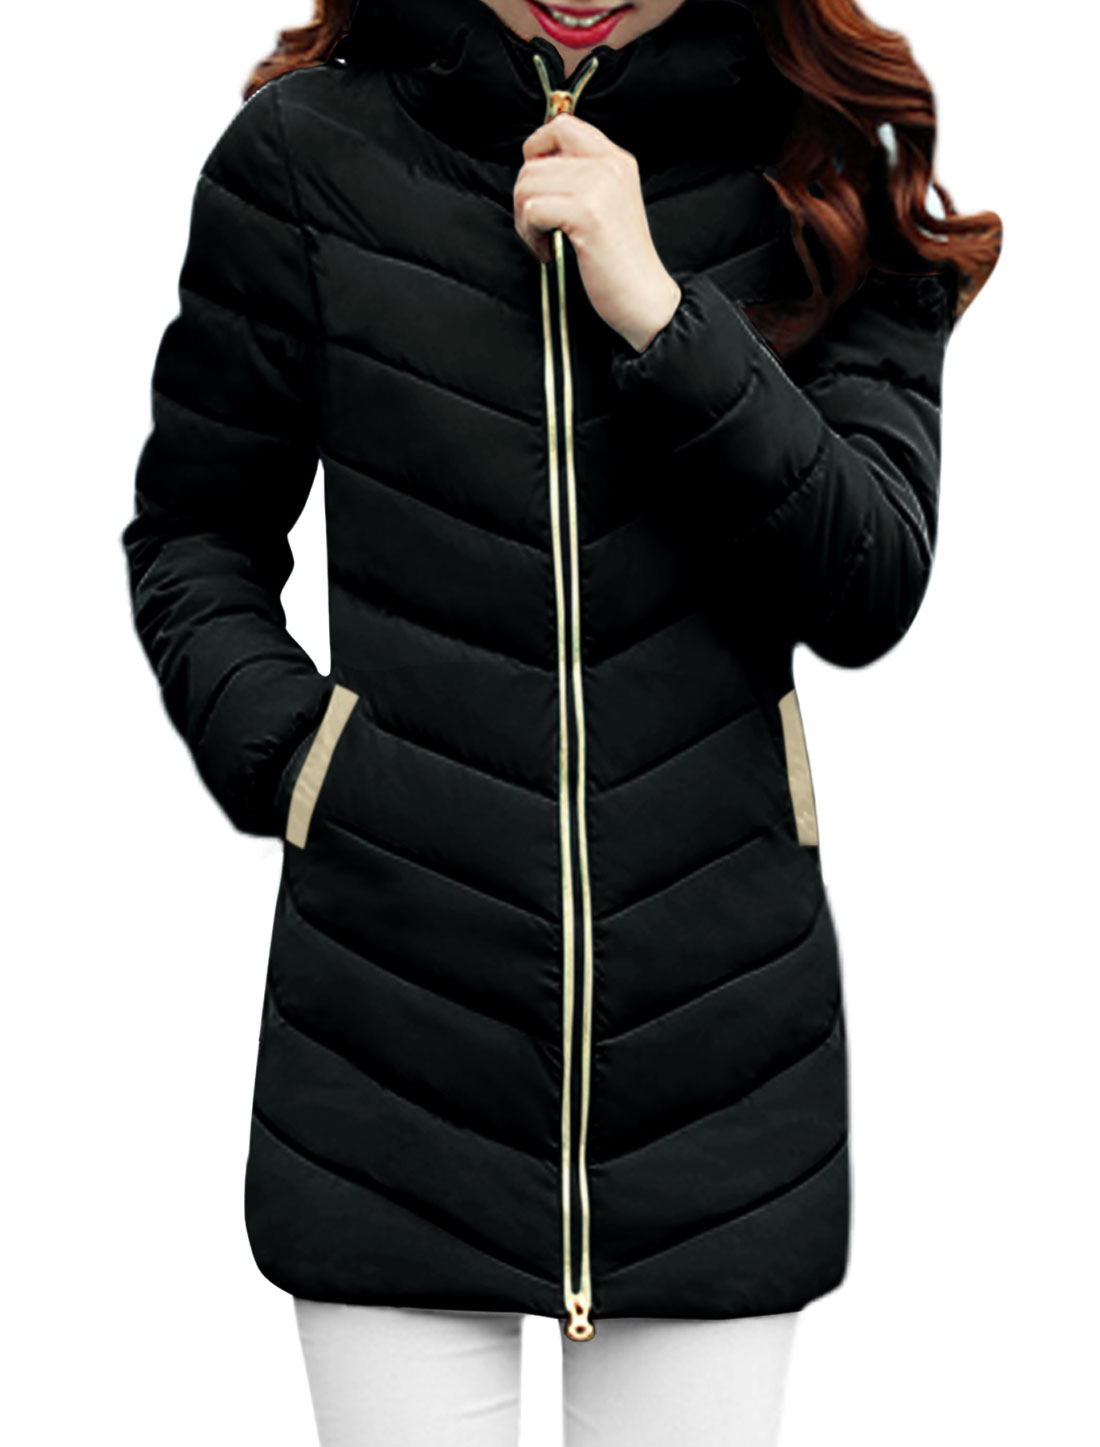 Women Hooded Zip Up Quilted Long Sleeves Padded Coat Black XS